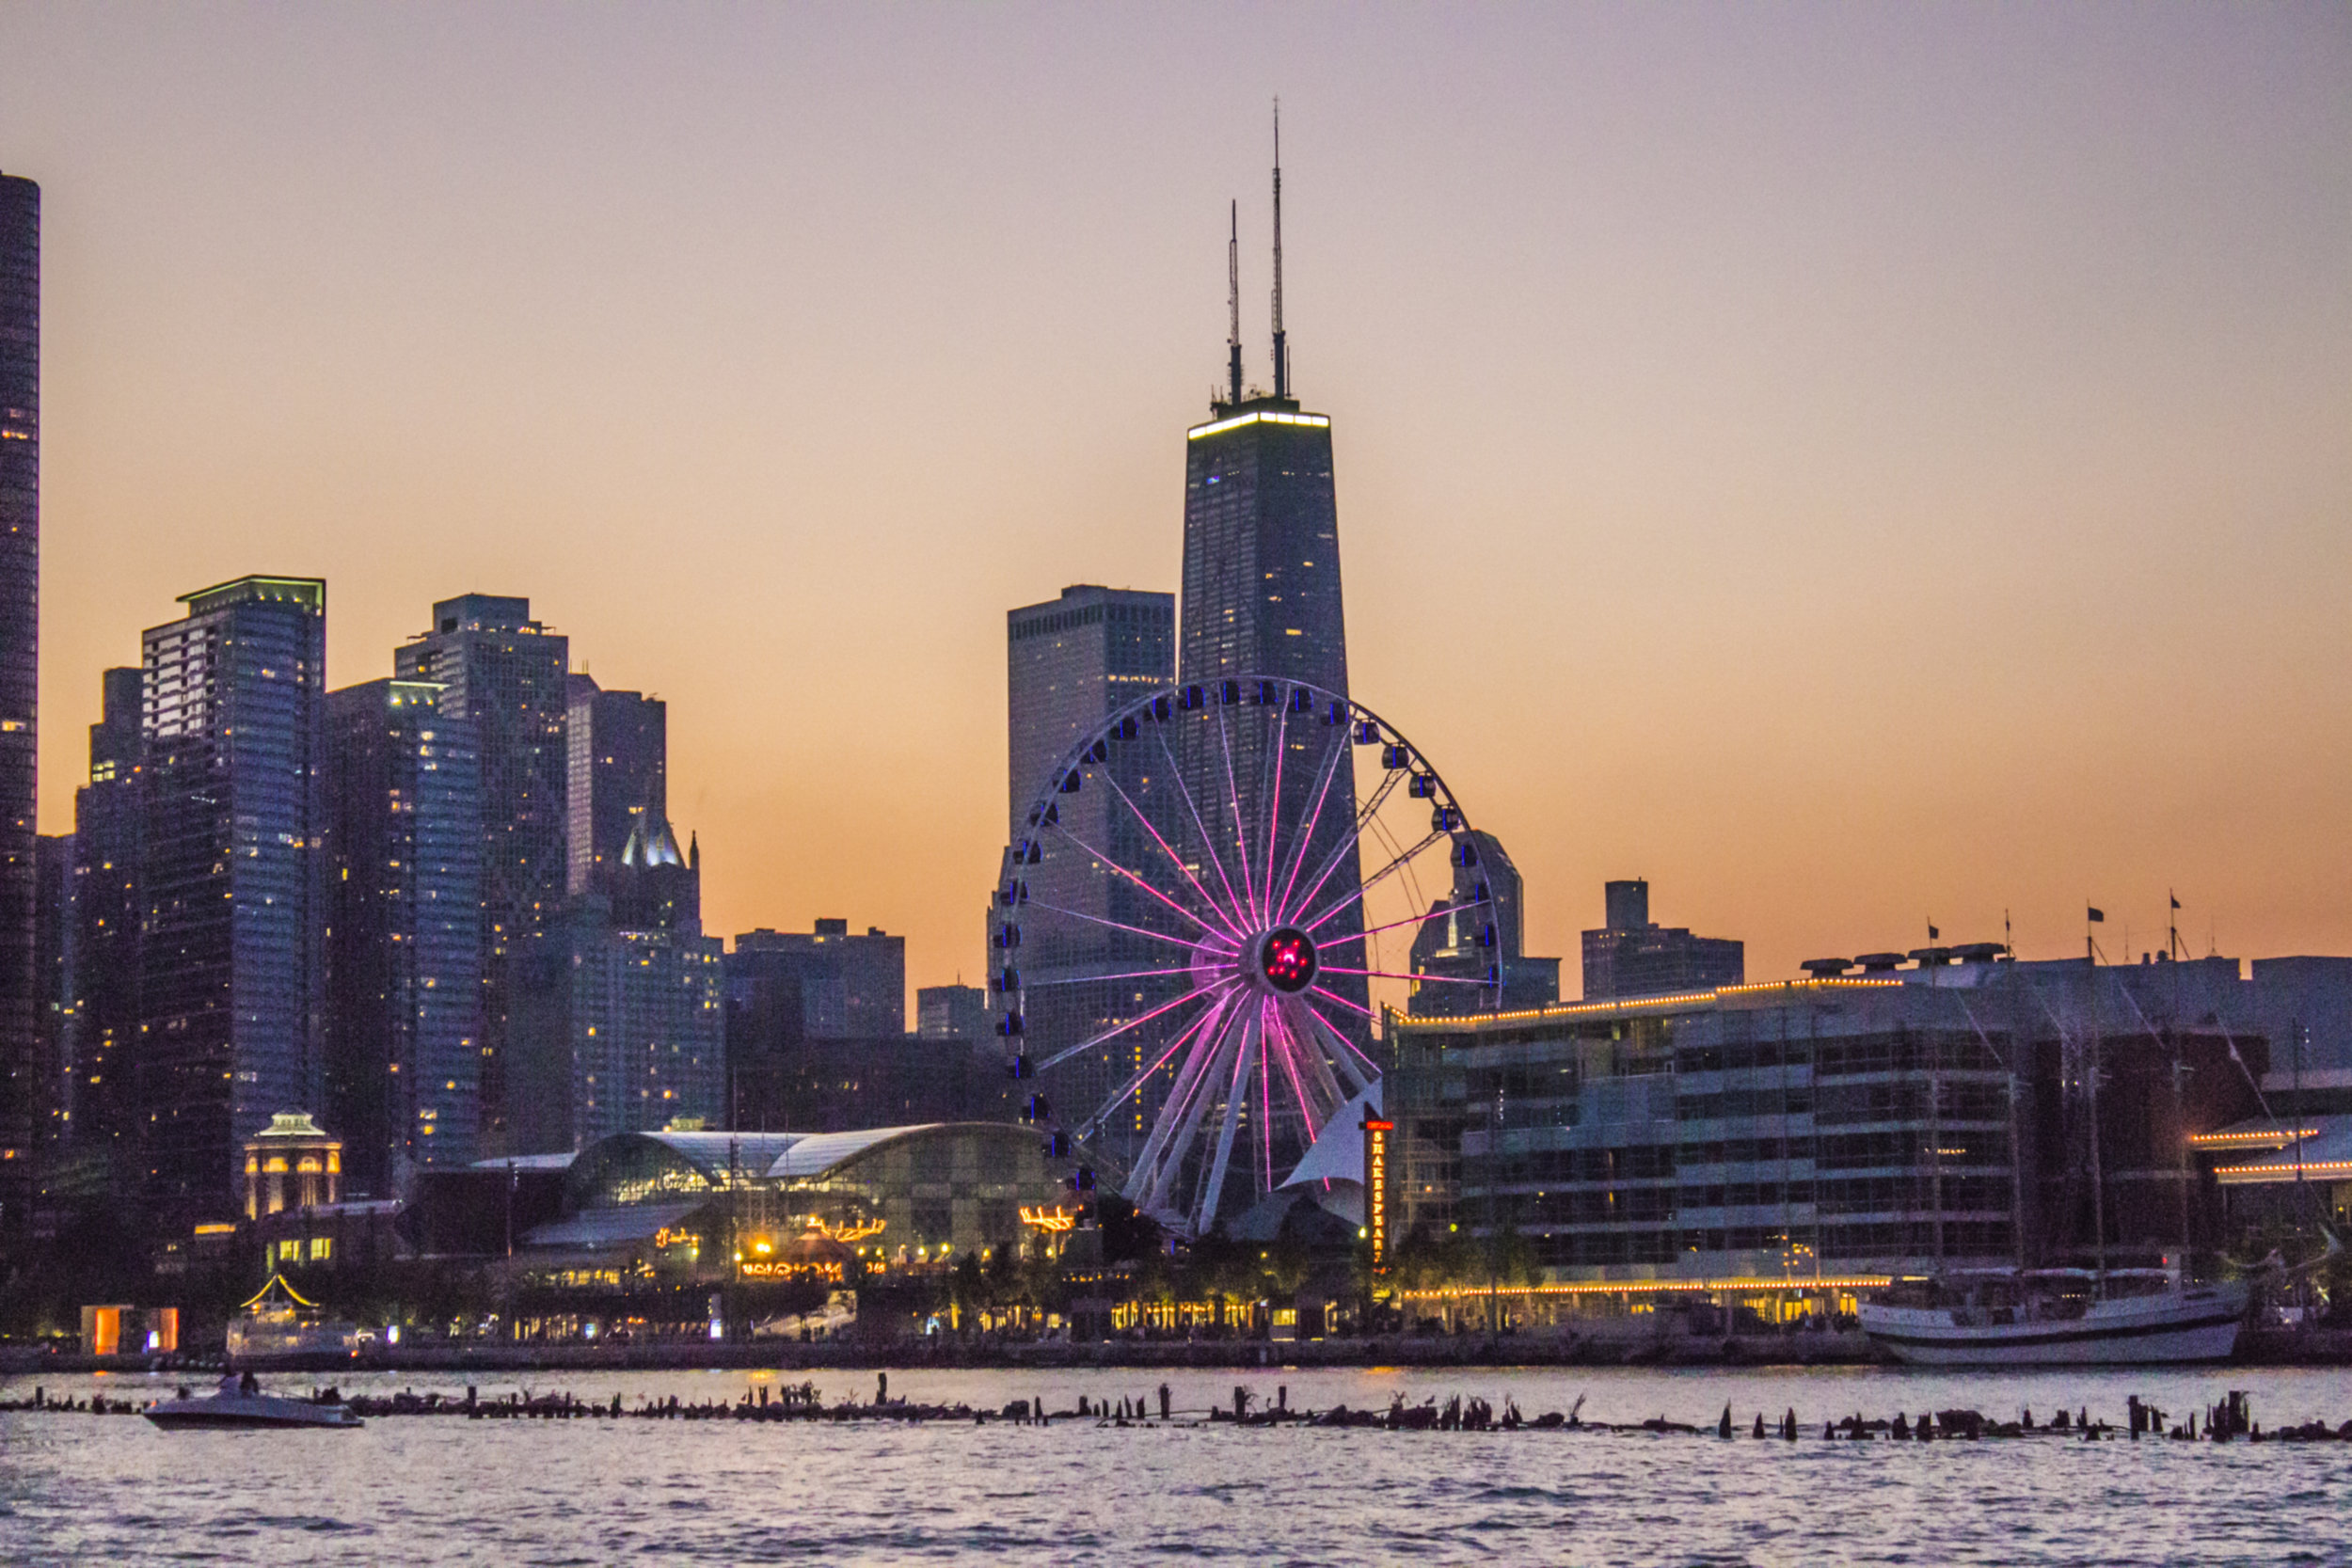 About Chicago Fireboat Tours